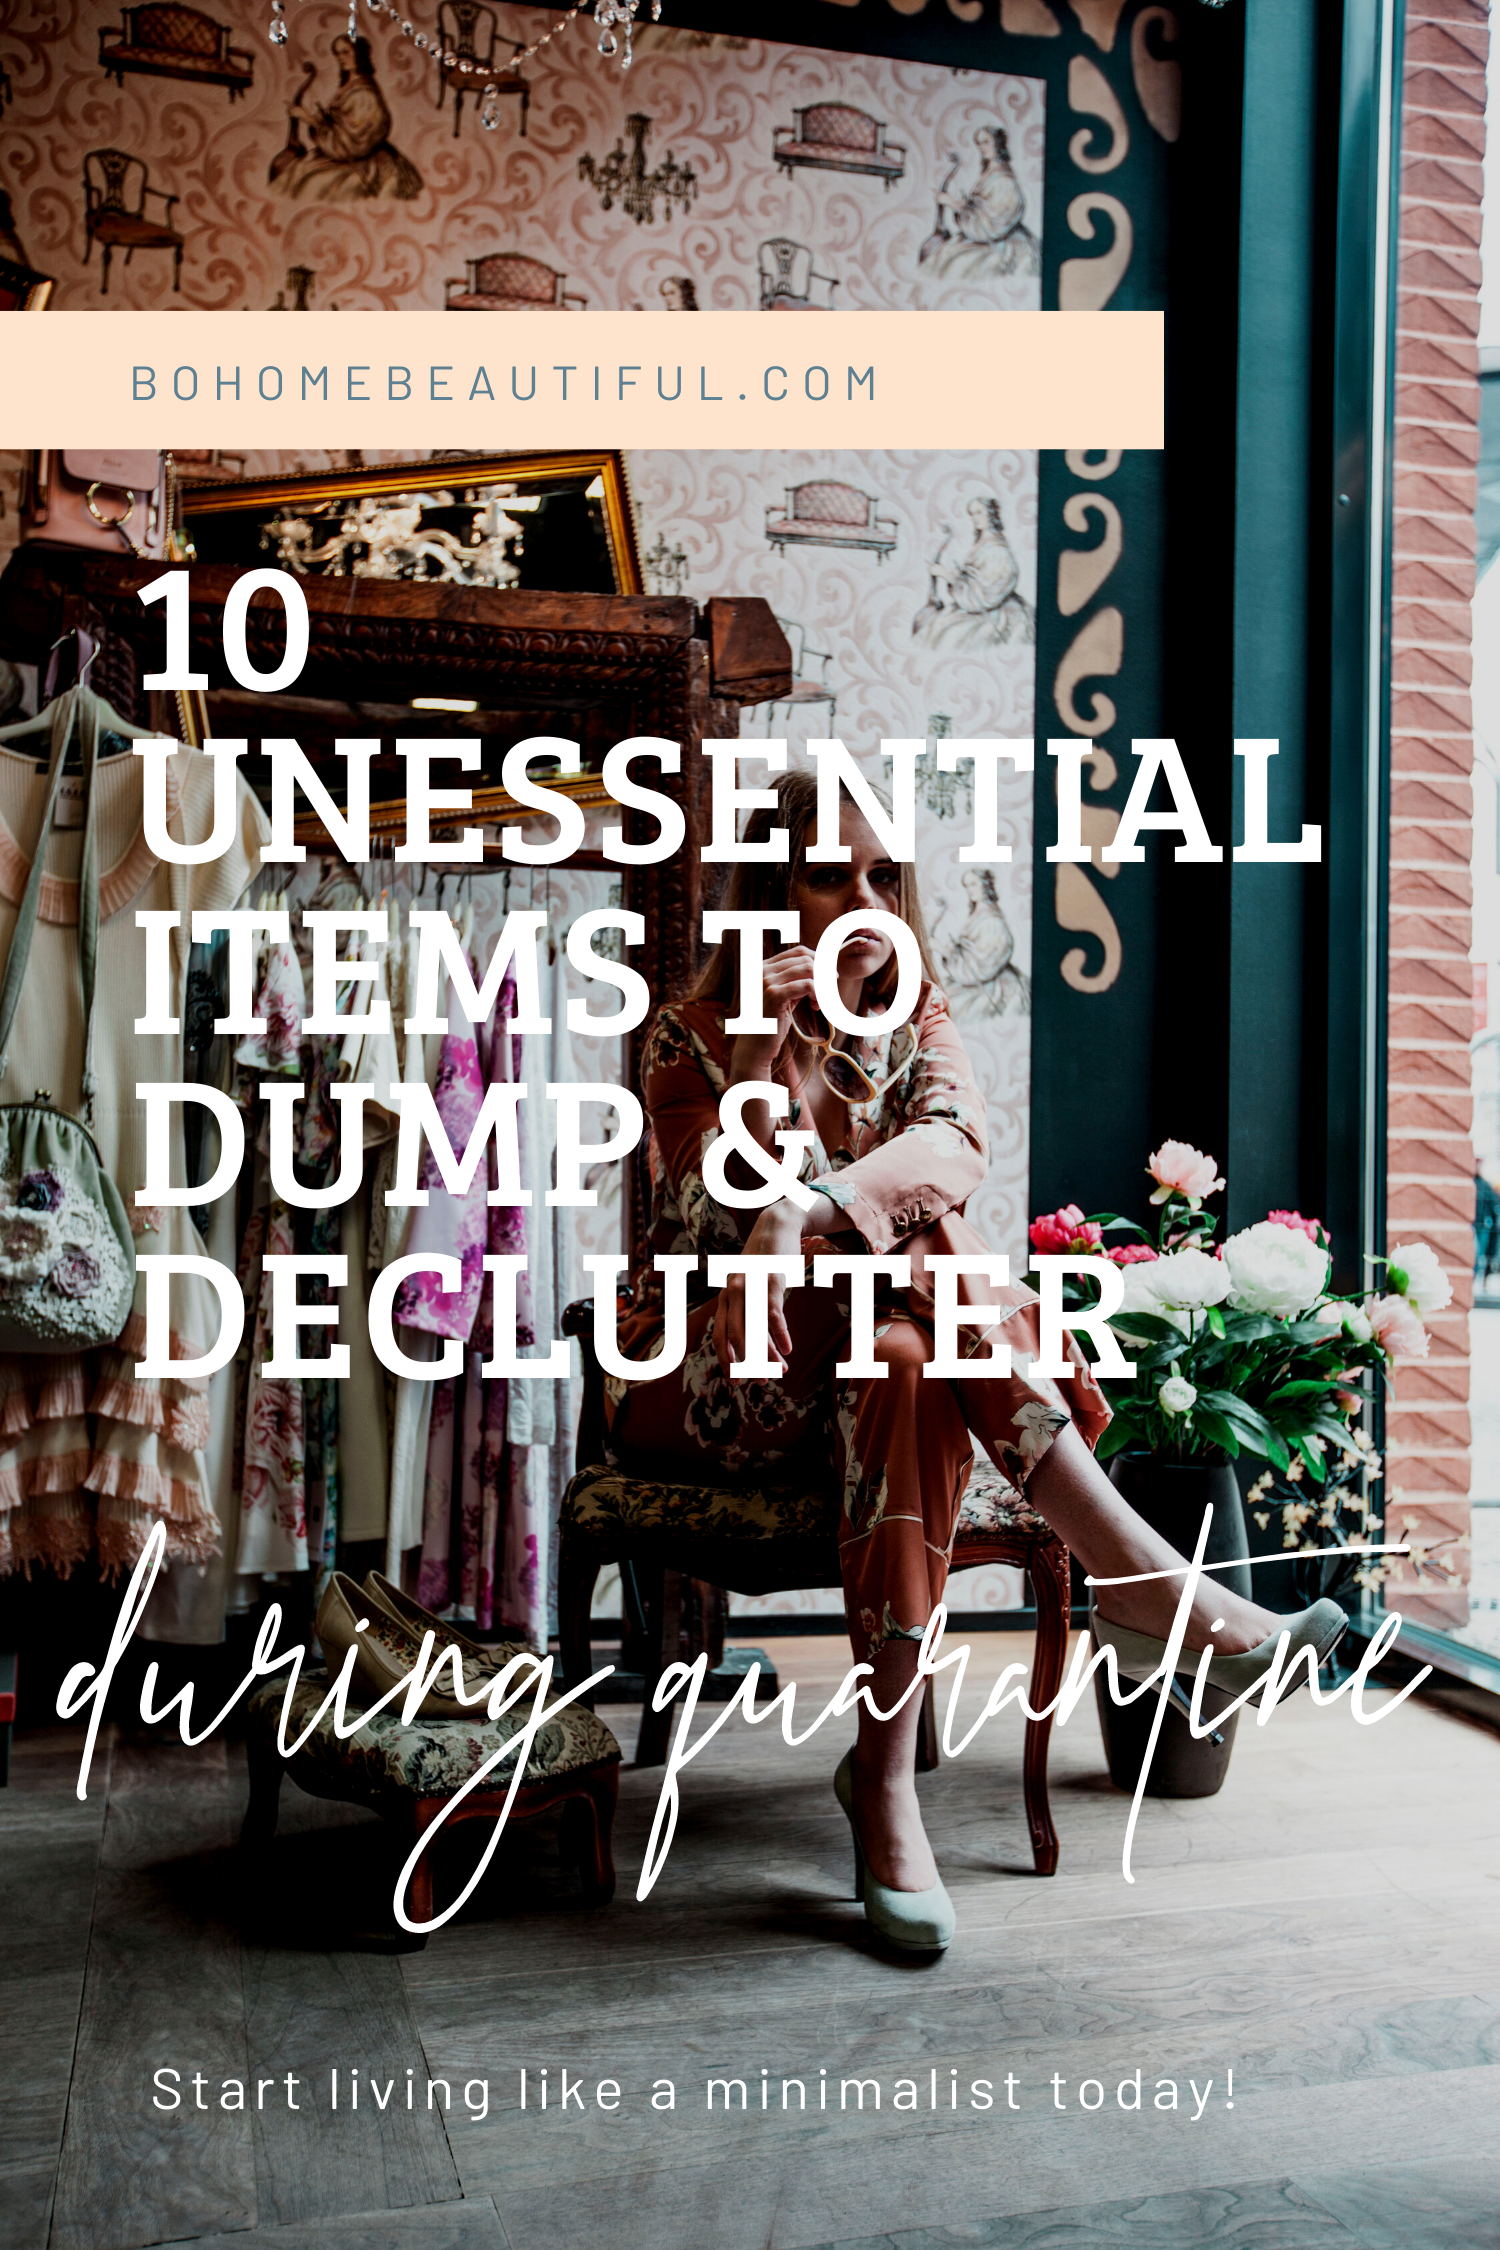 10 unessential items to dump and declutter during quarantine